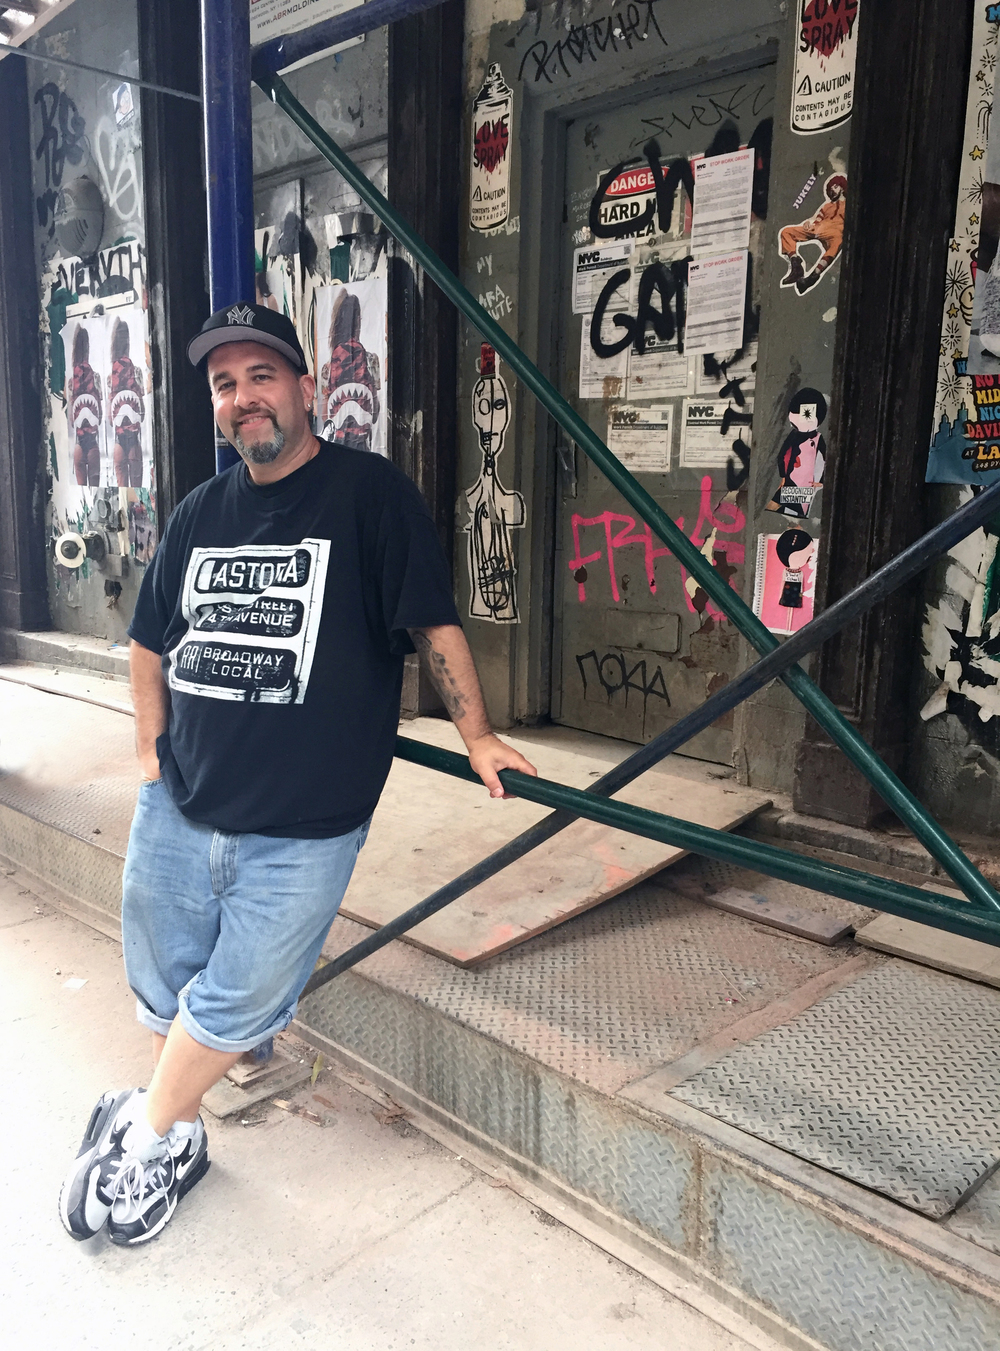 Phil LeBloas, owner and tour director, NYC Urban Art Tours Location: Greene Street, Soho NYC Photographer: Christine Shaffer